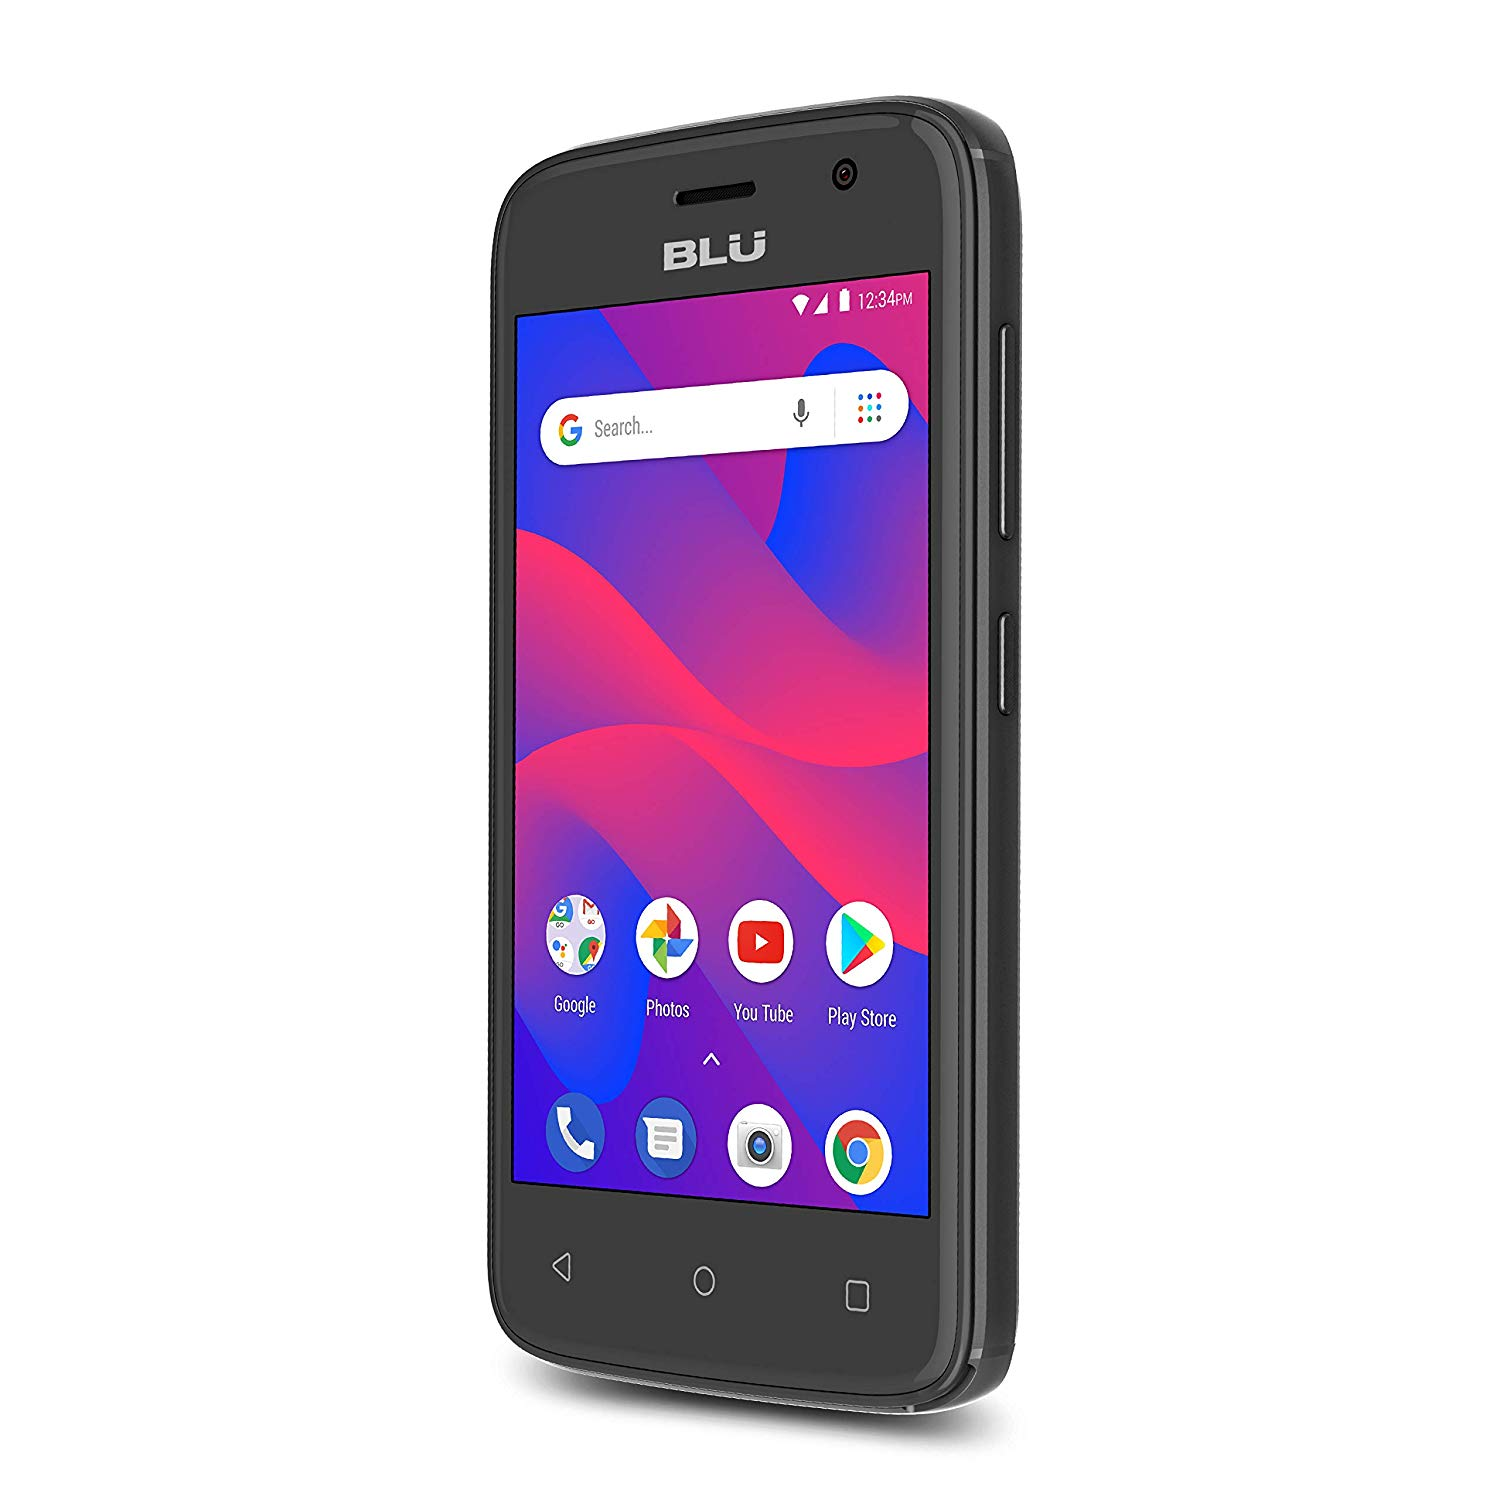 The 25 Best Smartphones for Seniors in 2020 Assisted